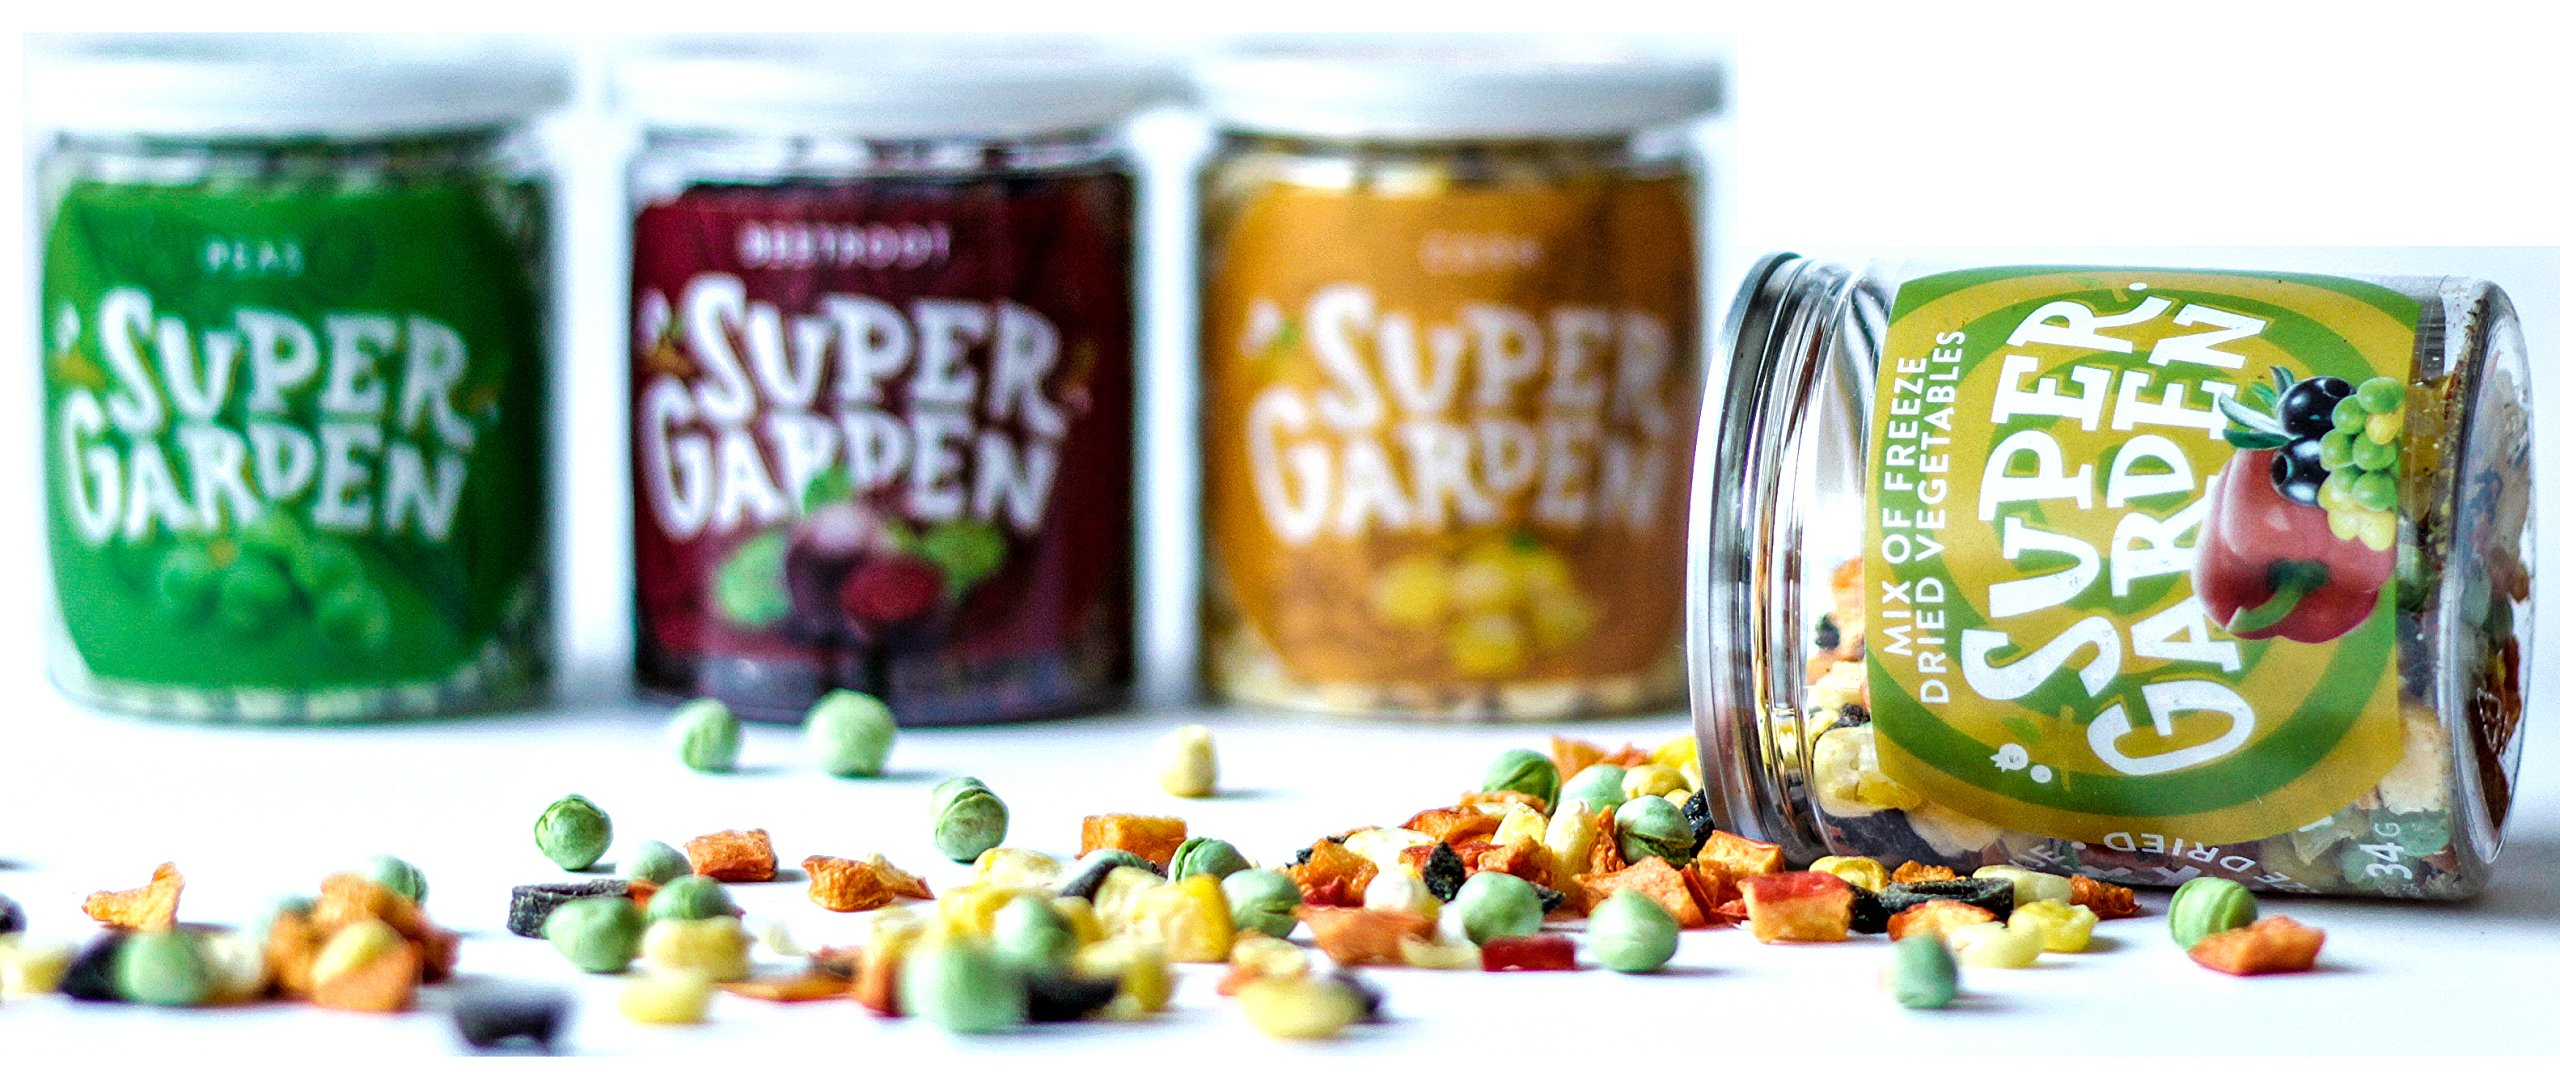 Supergarden Snack Box - Freeze Dried Vegetables < Dried